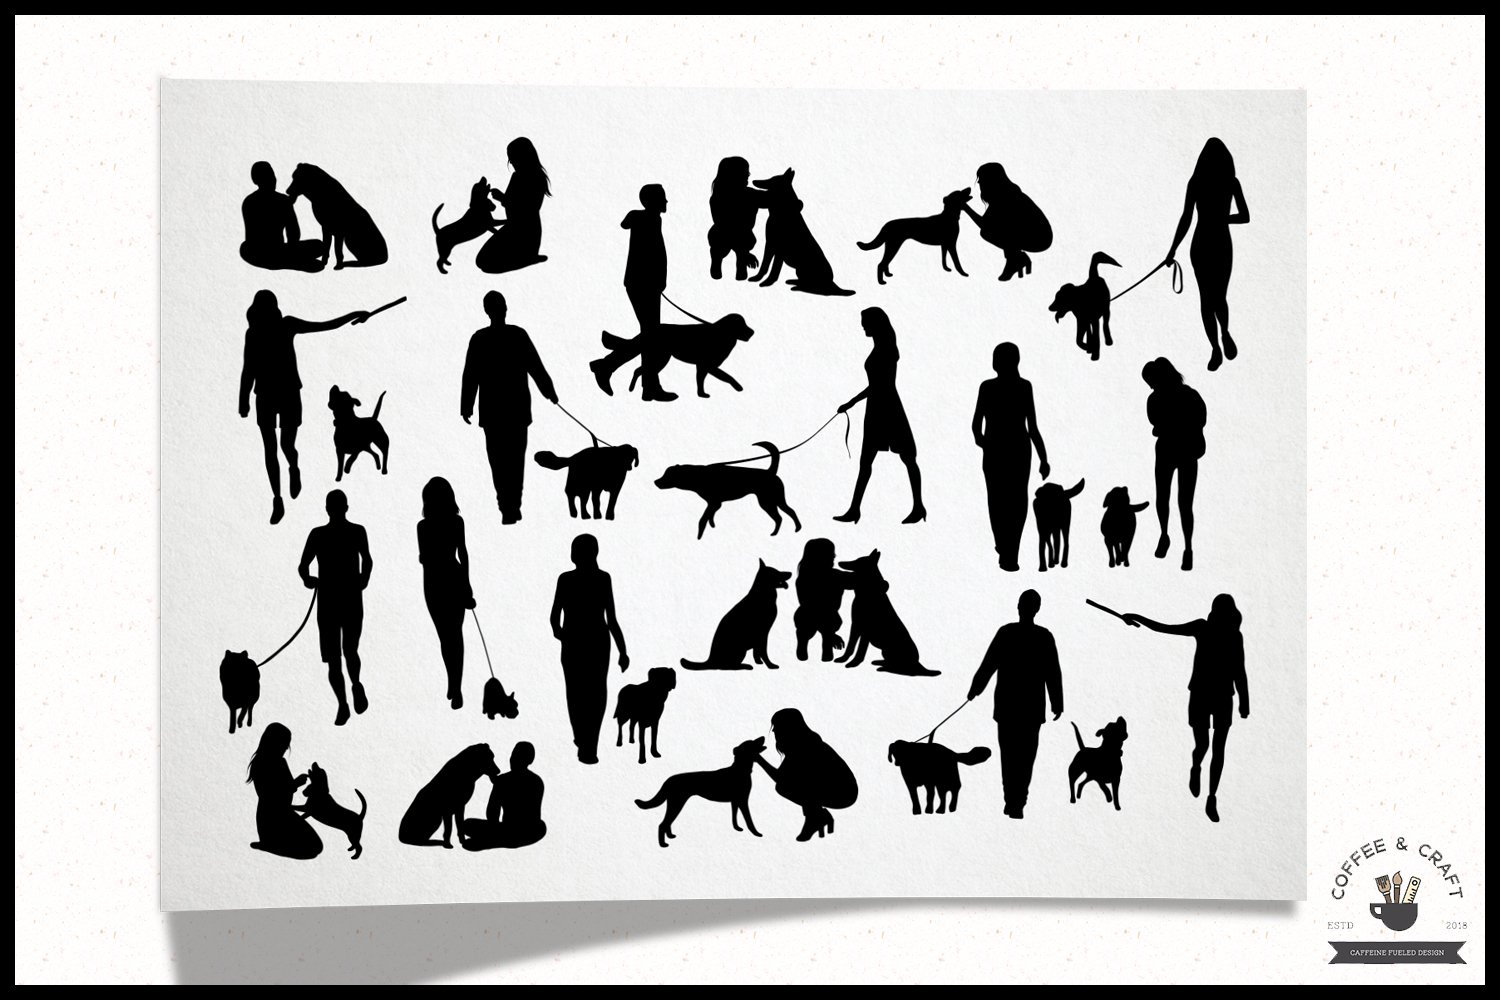 Dog owners clipart example image 5